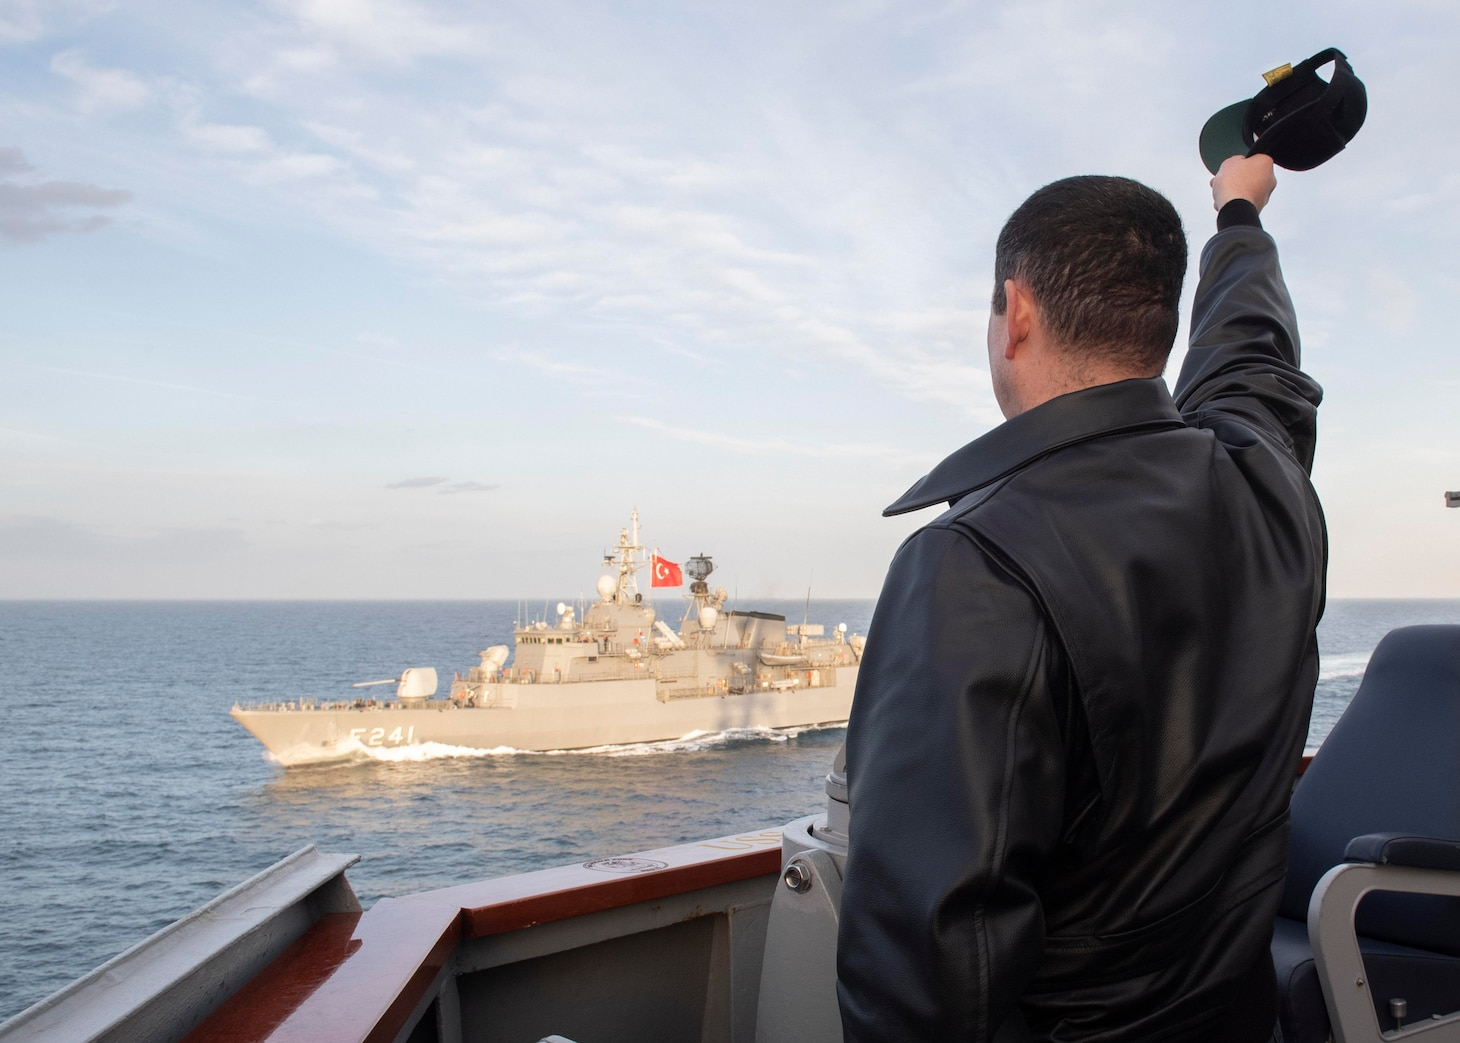 210209-N-RG171-0319 BLACK SEA (Feb. 9, 2021) Cmdr. Matthew Curnen, commanding officer of the Arleigh Burke-class guided-missile destroyer USS Donald Cook (DDG 75), waves to the Turkish navy Yavuz-class TCG Turgutreis (F-241) during a passing exercise in the Black Sea, Feb. 9, 2021. Donald Cook, forward-deployed to Rota, Spain, is on patrol in U.S. Sixth Fleet in support of regional allies and partners and U.S. national security in Europe and Africa. (U.S. Navy photo by Mass Communication Specialist 3rd Class Will Hardy/Released)